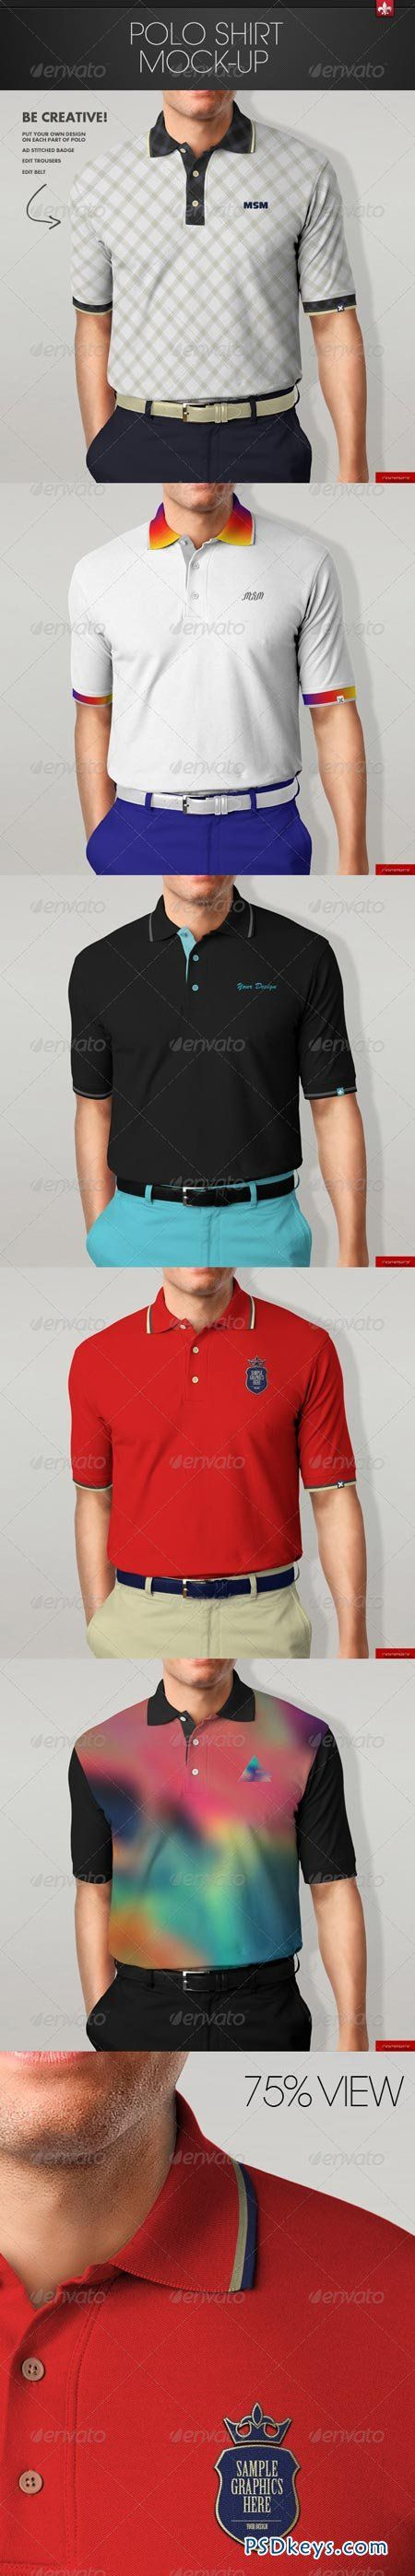 Polo Shirt Mock-up 7245899